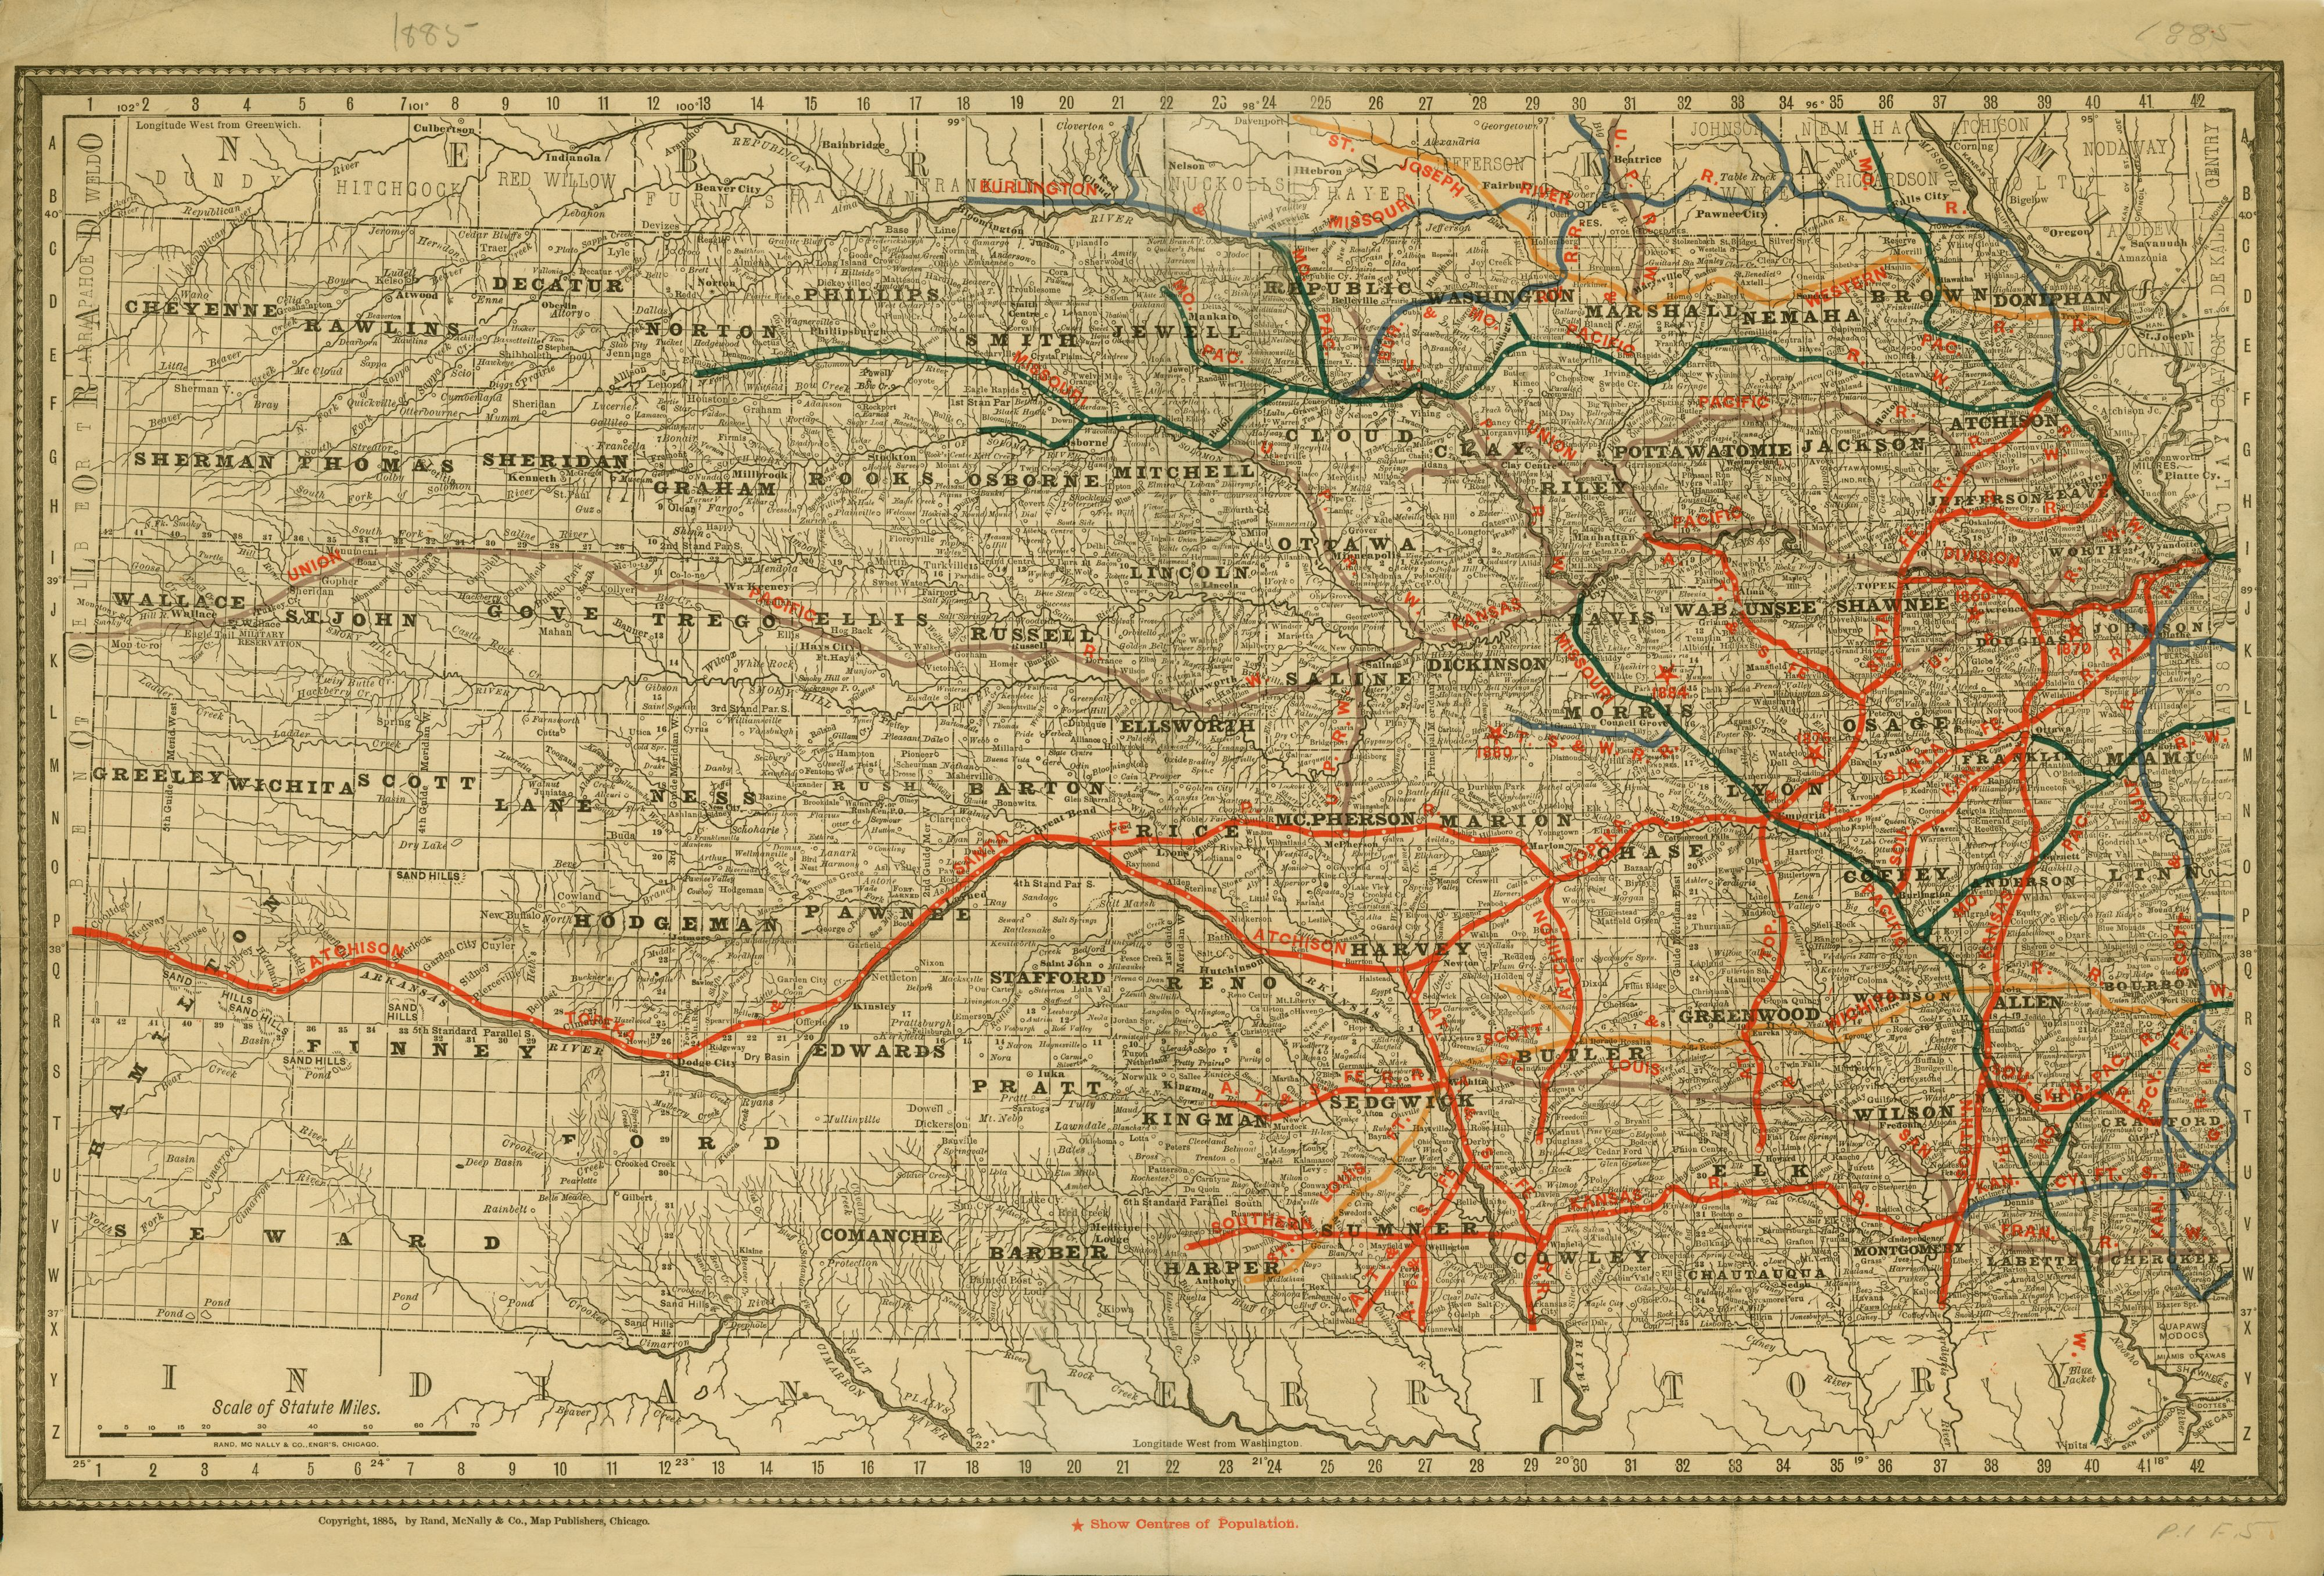 Official Kansas railroad map from 1885. My great-grandfather lived on kansas nuclear power plant map, kansas on map, small kansas town map, kansas unit map, kansas county map, co ks map, kansas oklahoma map, kansas colorado map, kansas soccer stadium, kansas quotes, kansas historic trails, kansas district map, kansas geology, kansas river map, kansas roadway map, kansas race map, kansas utility map, kansas weather radar, kansas transportation map, kansas america map,